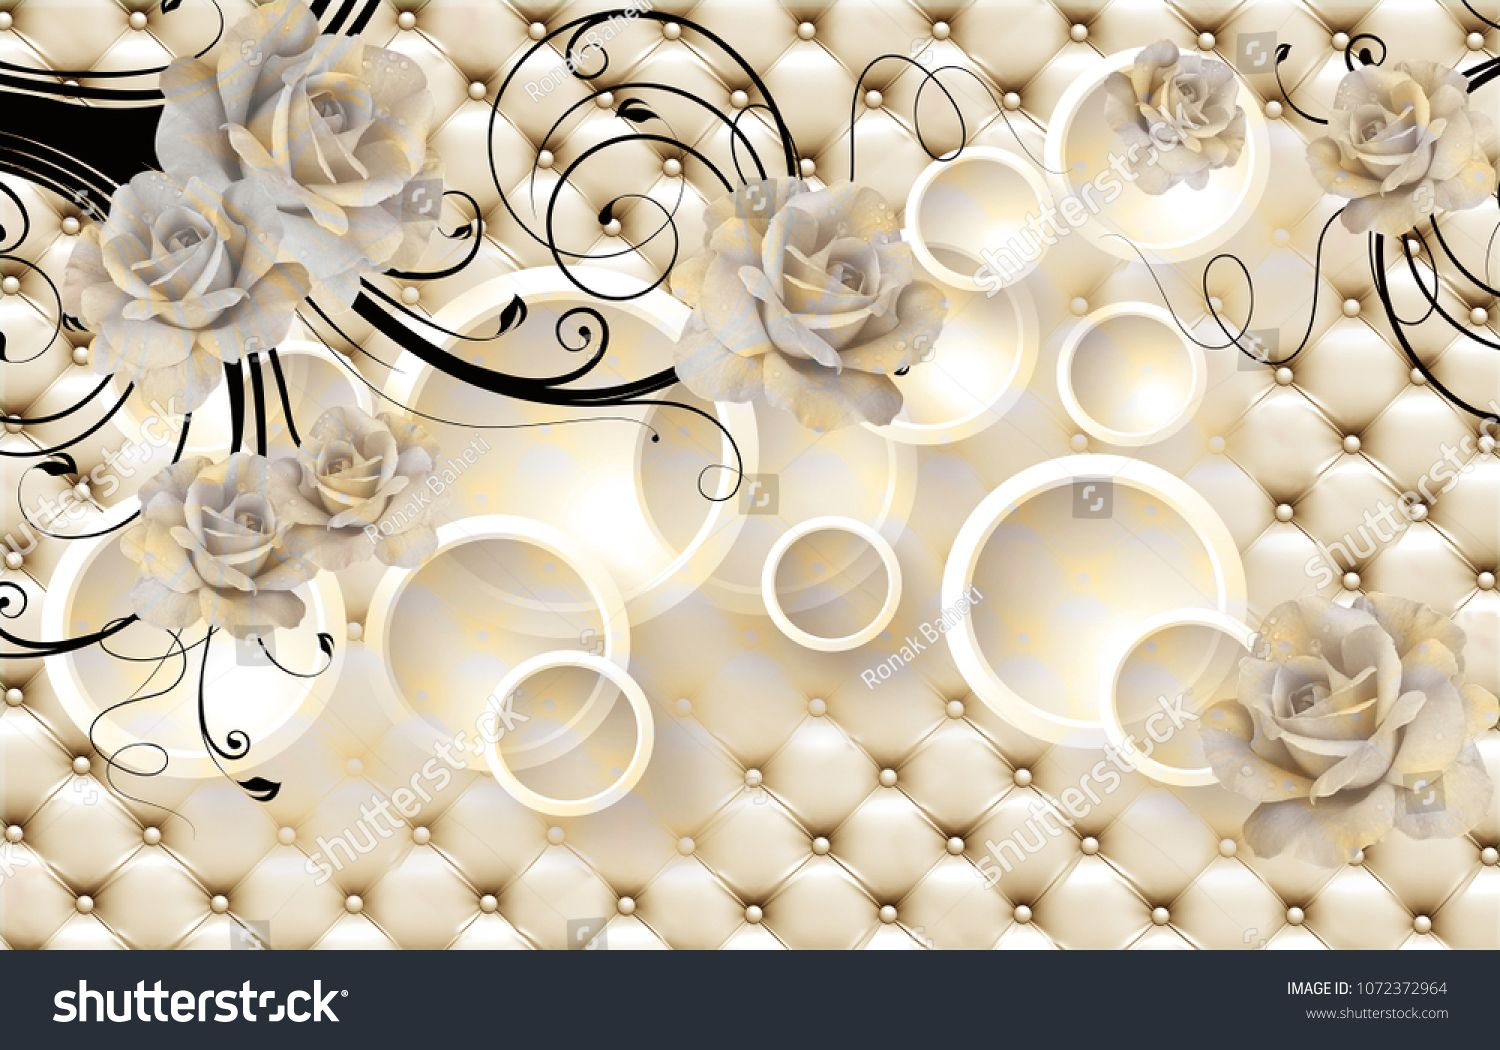 3d Flowers Background With Circle Wallpaper For Walls Sponsored Ad Background Flowers Circle Walls Wall Wallpaper 3d Wallpaper Design 3d Flowers